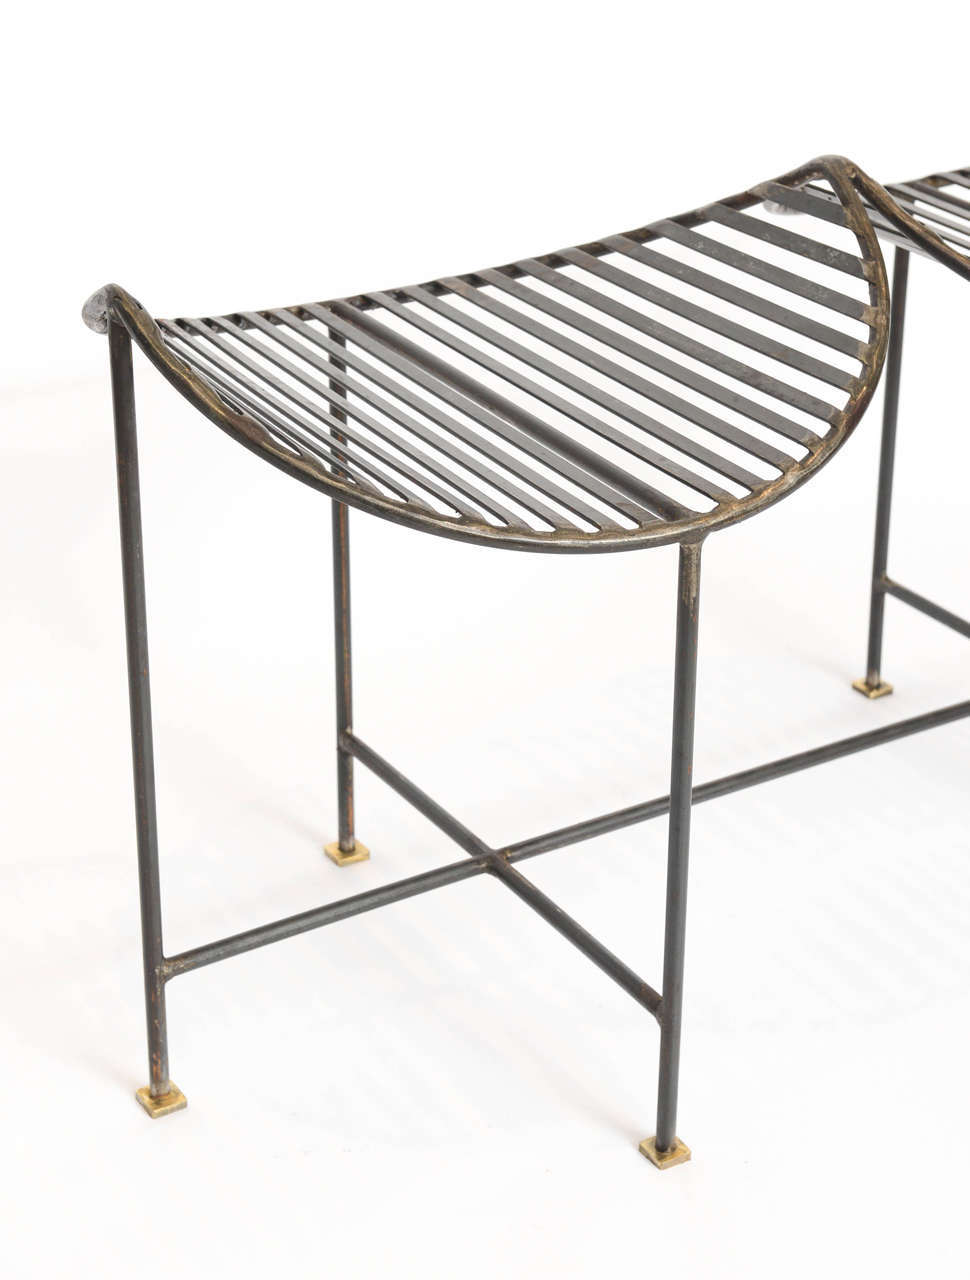 Industrial Slatted Blackened Iron Bench In Excellent Condition For Sale In East Hampton, NY